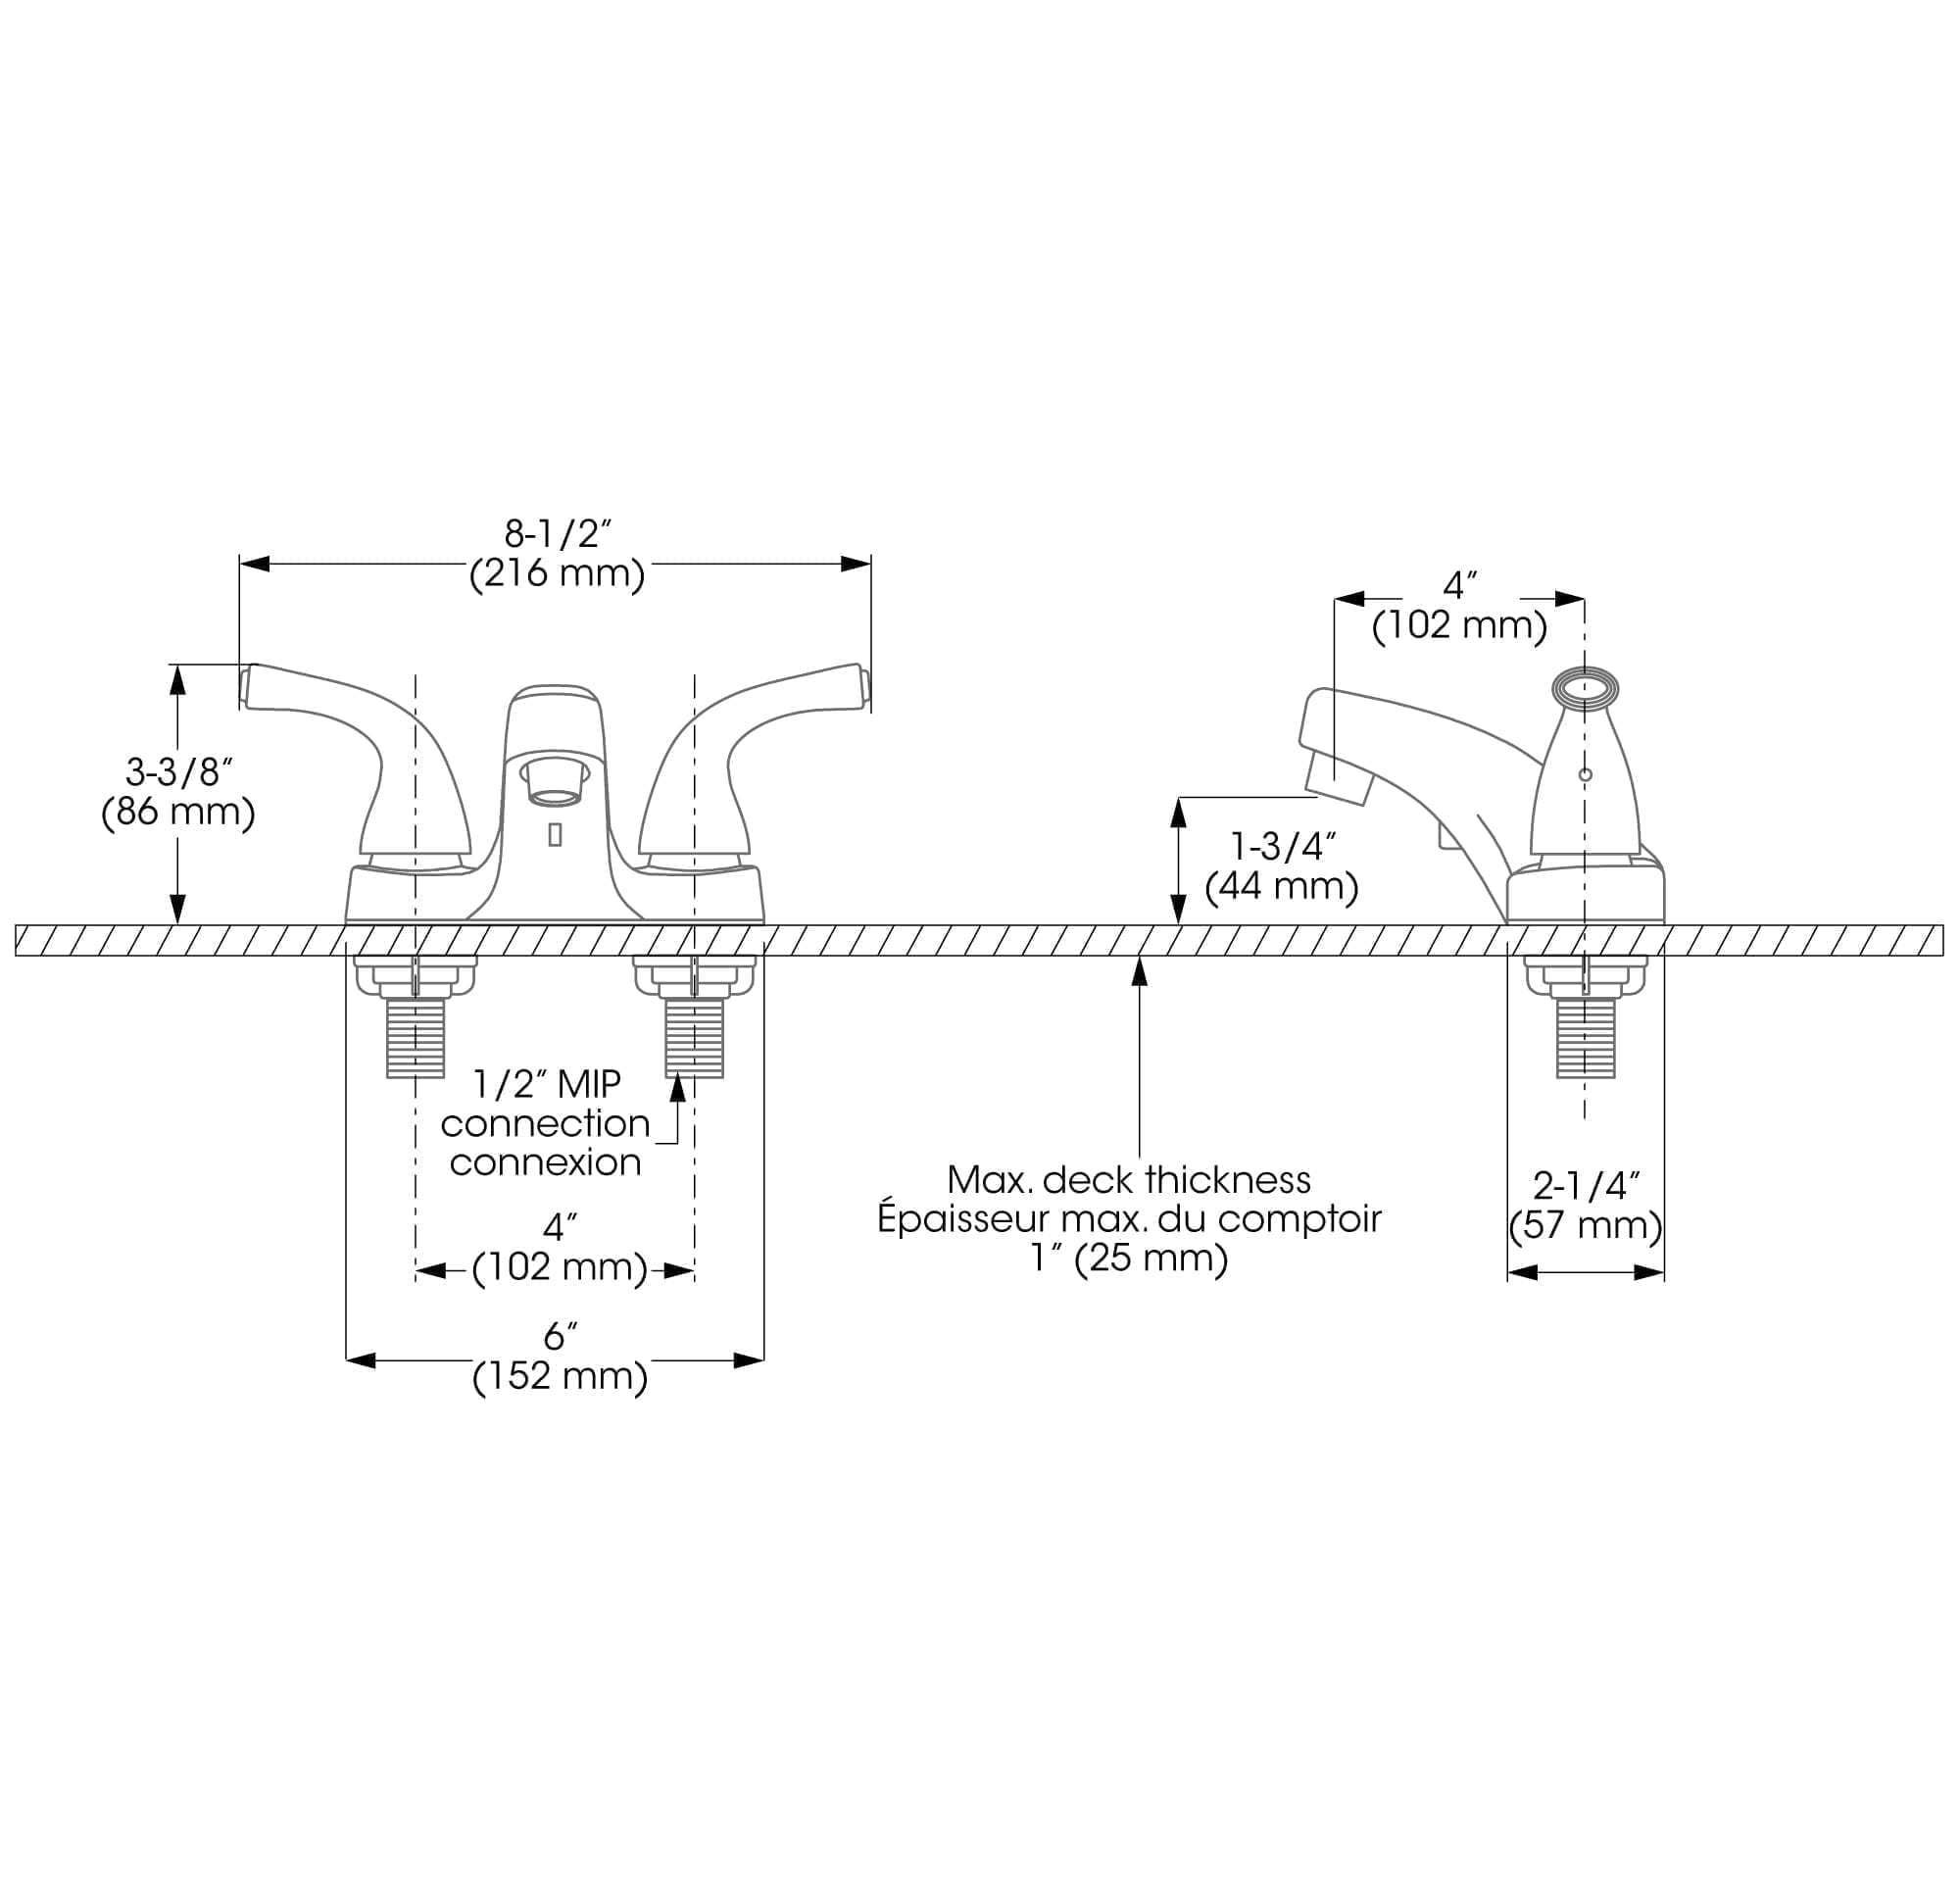 Lavatory Sink Faucet Blanger Upt Automatic Wiring Diagrams Installation And Support